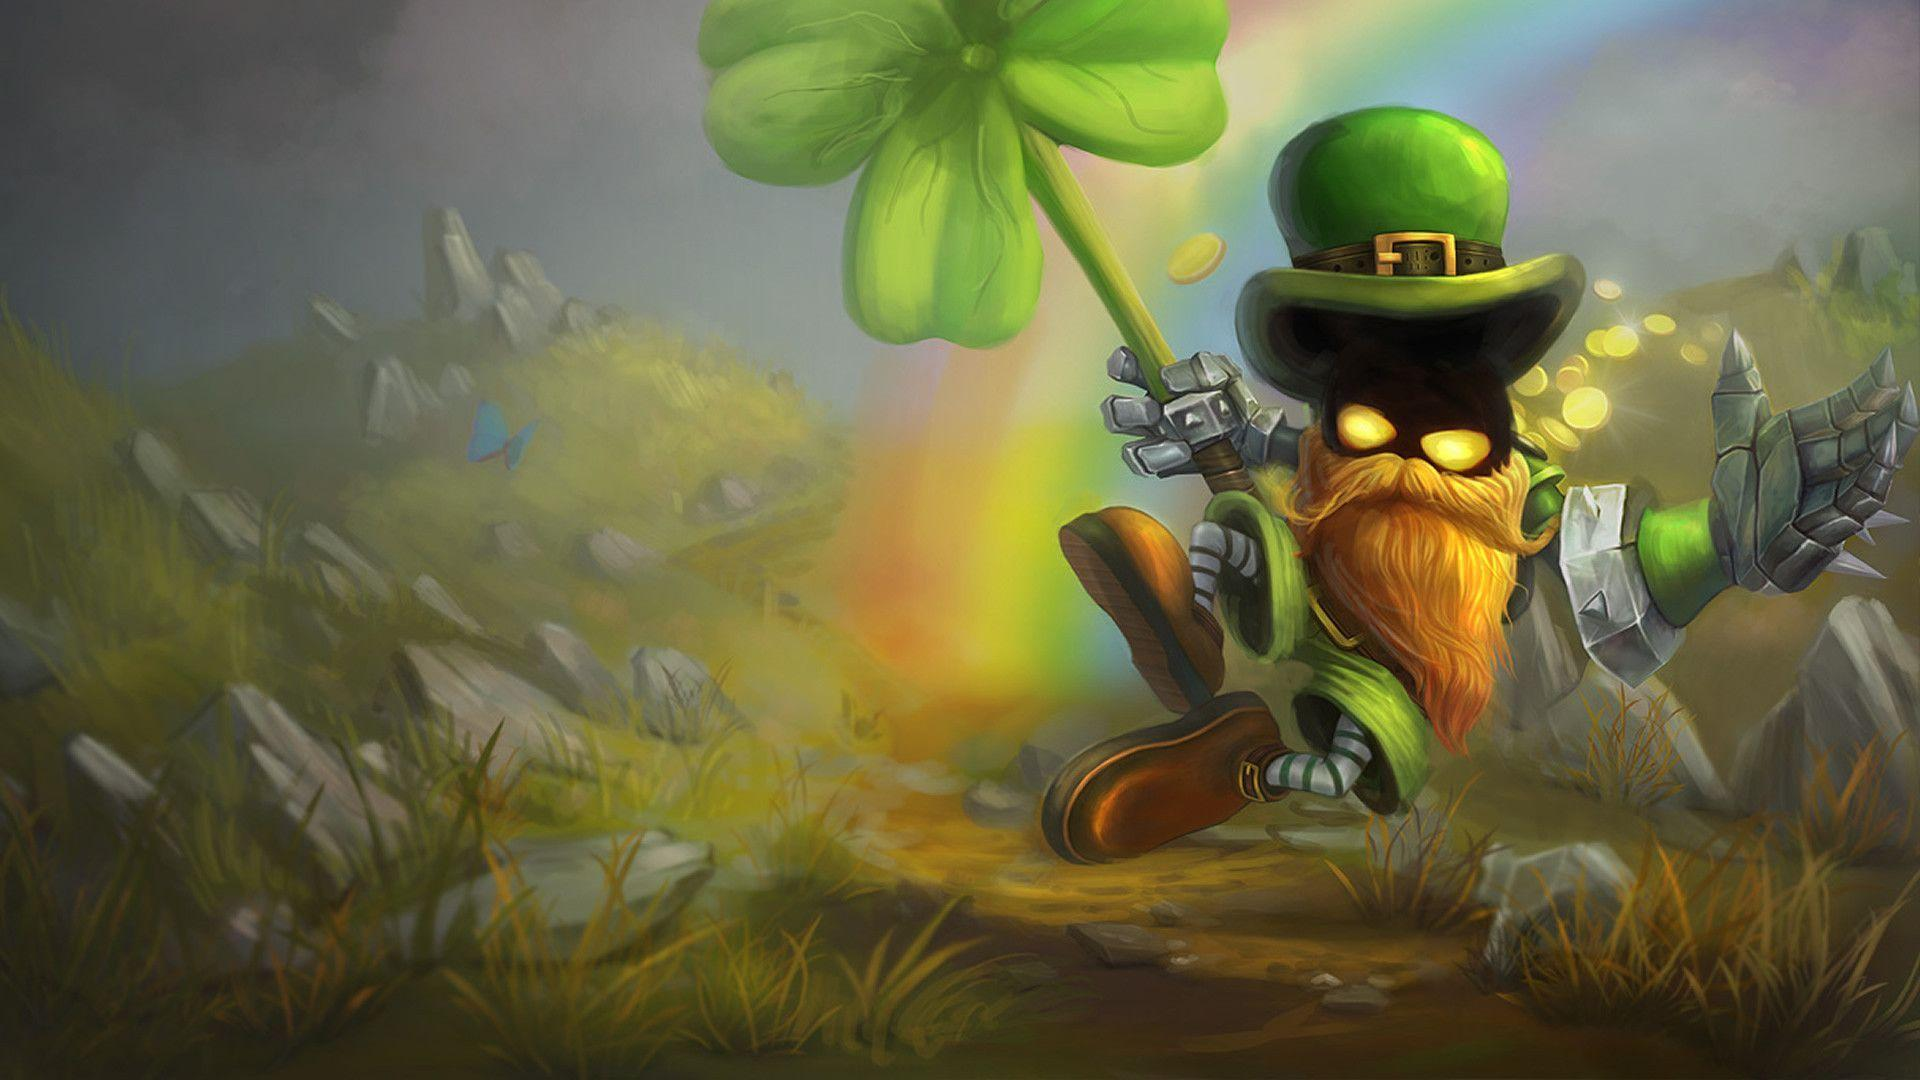 41 High Quality Leprechaun Wallpapers | Full HD Pictures